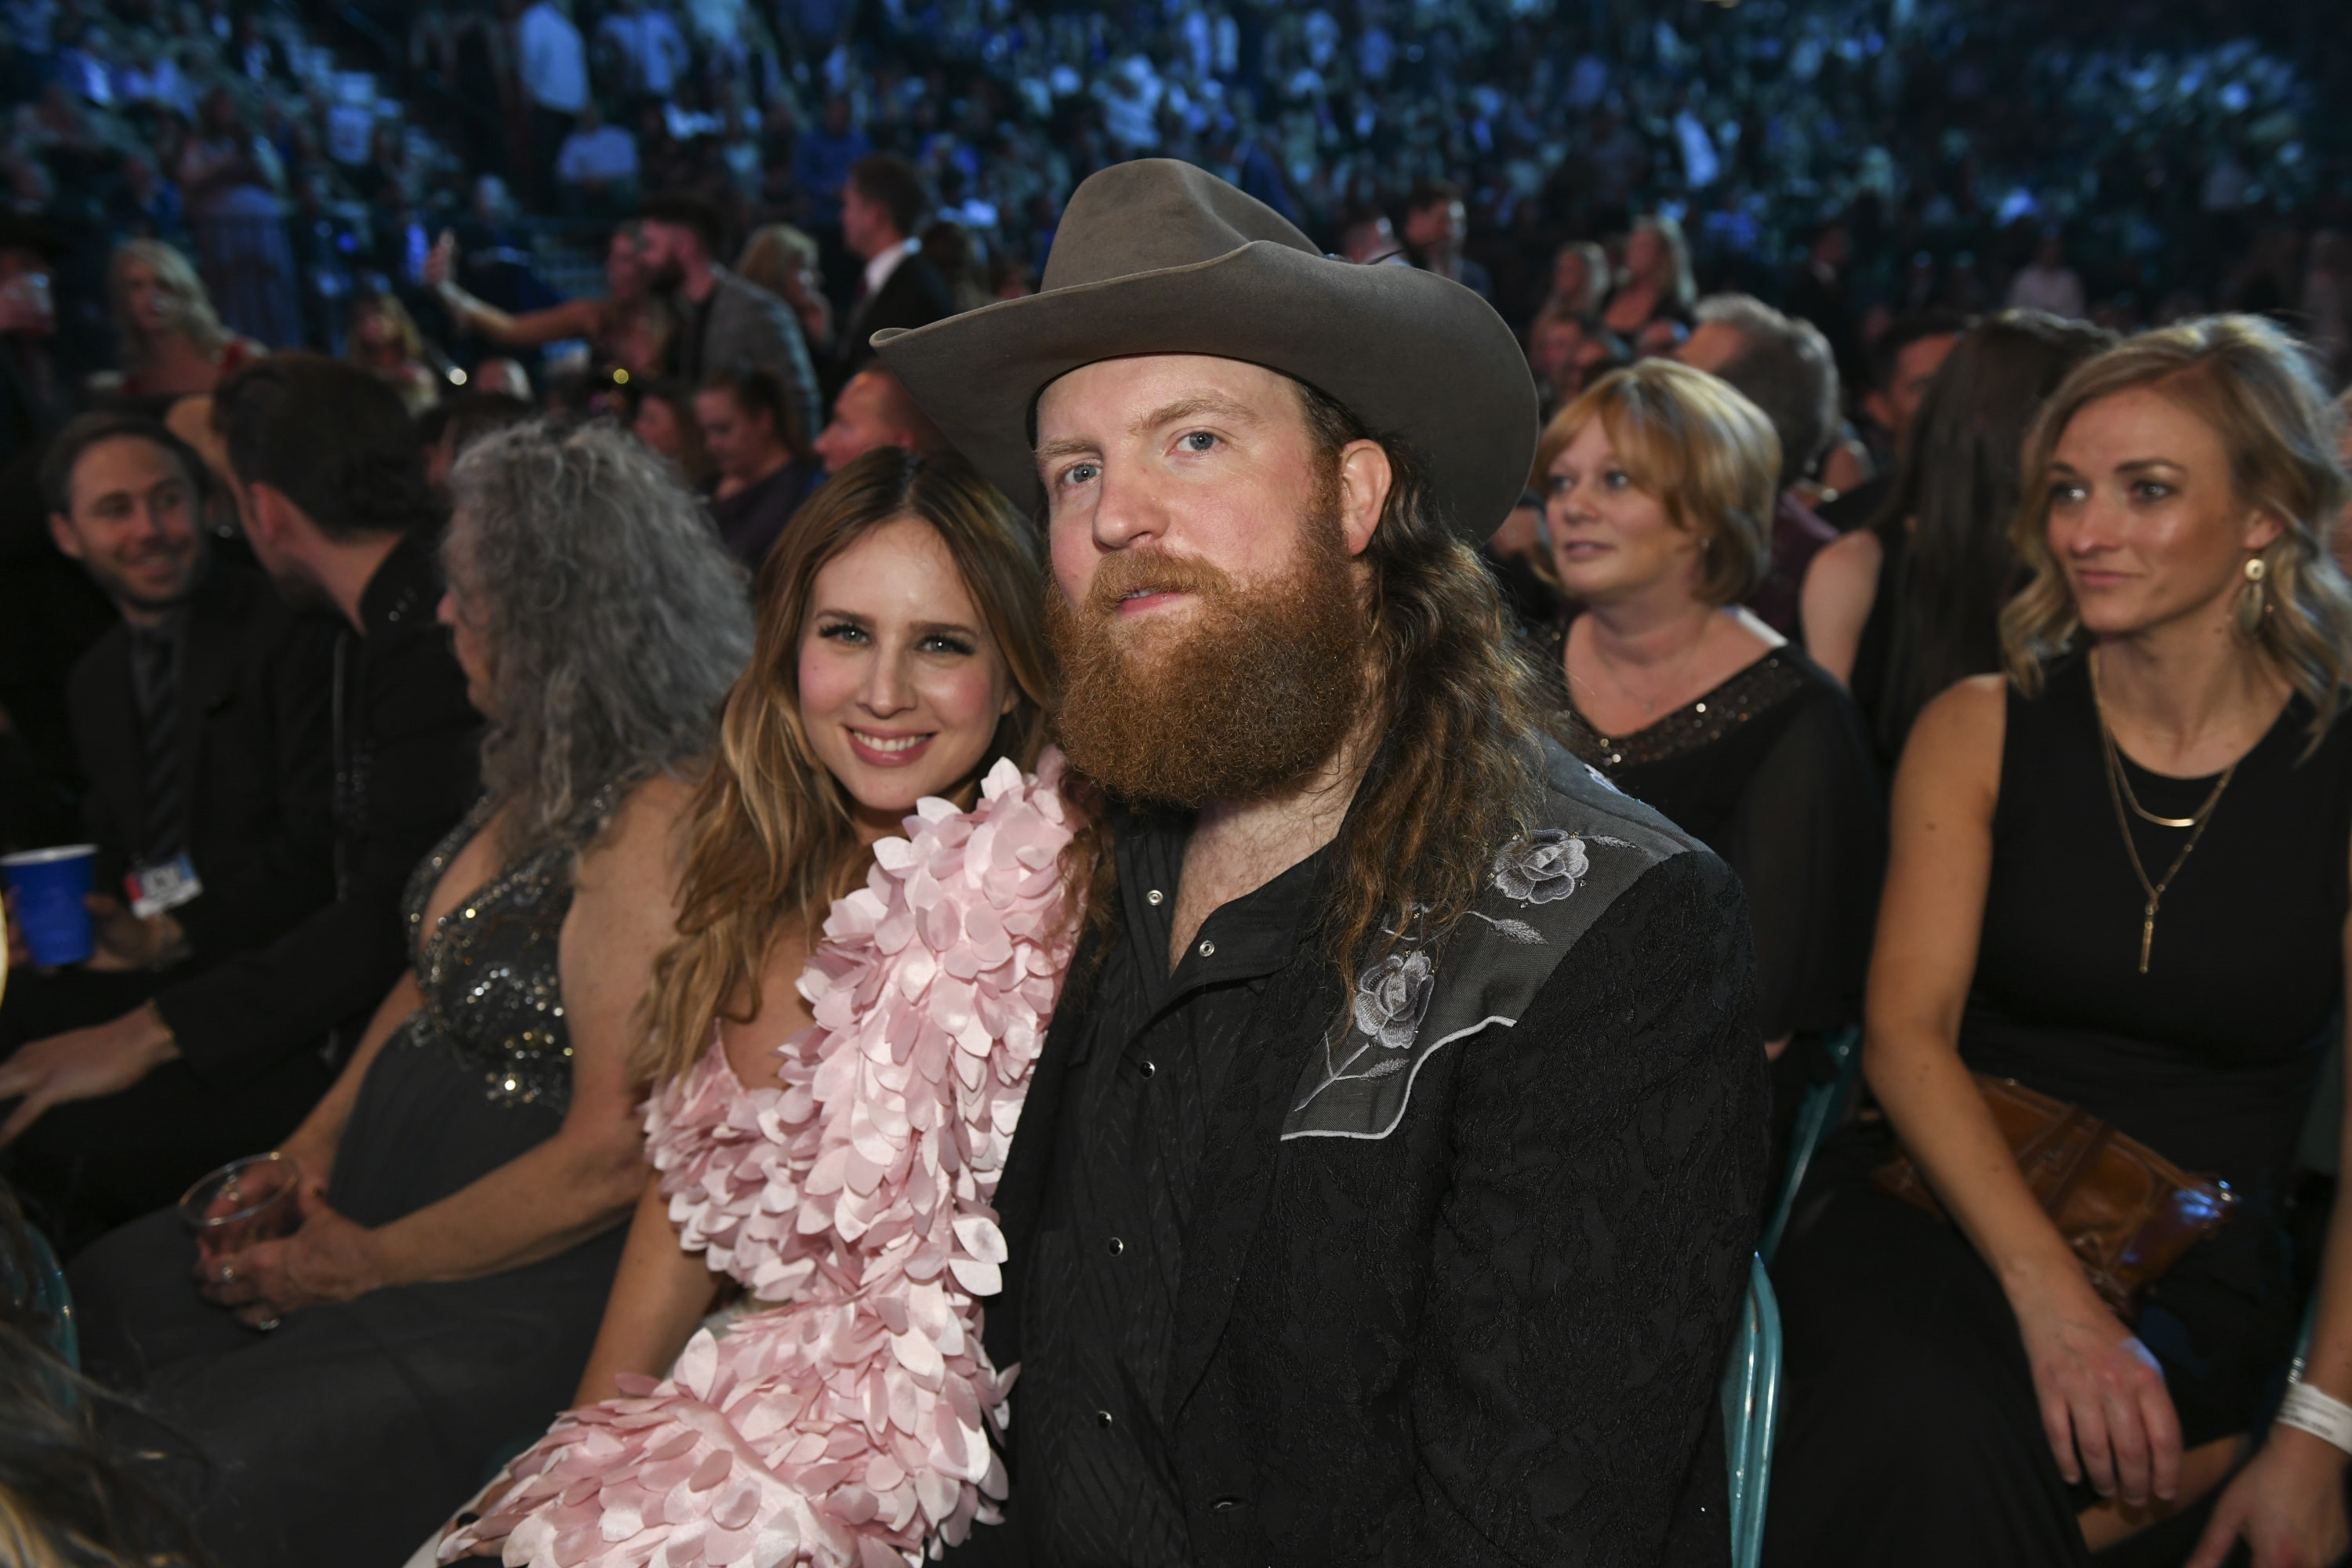 John Osborne of Brothers Osborne and Lucie Silvas during the 54TH ACADEMY OF COUNTRY MUSIC AWARDS, to broadcast LIVE from MGM Grand Garden Arena in Las Vegas Sunday, April 7, 2019 (8:00-11:00 PM, ET/delayed PT) on the CBS Television Network. Photo: Sam Morris/CBS ©2019 CBS Broadcasting, Inc. All Rights Reserved